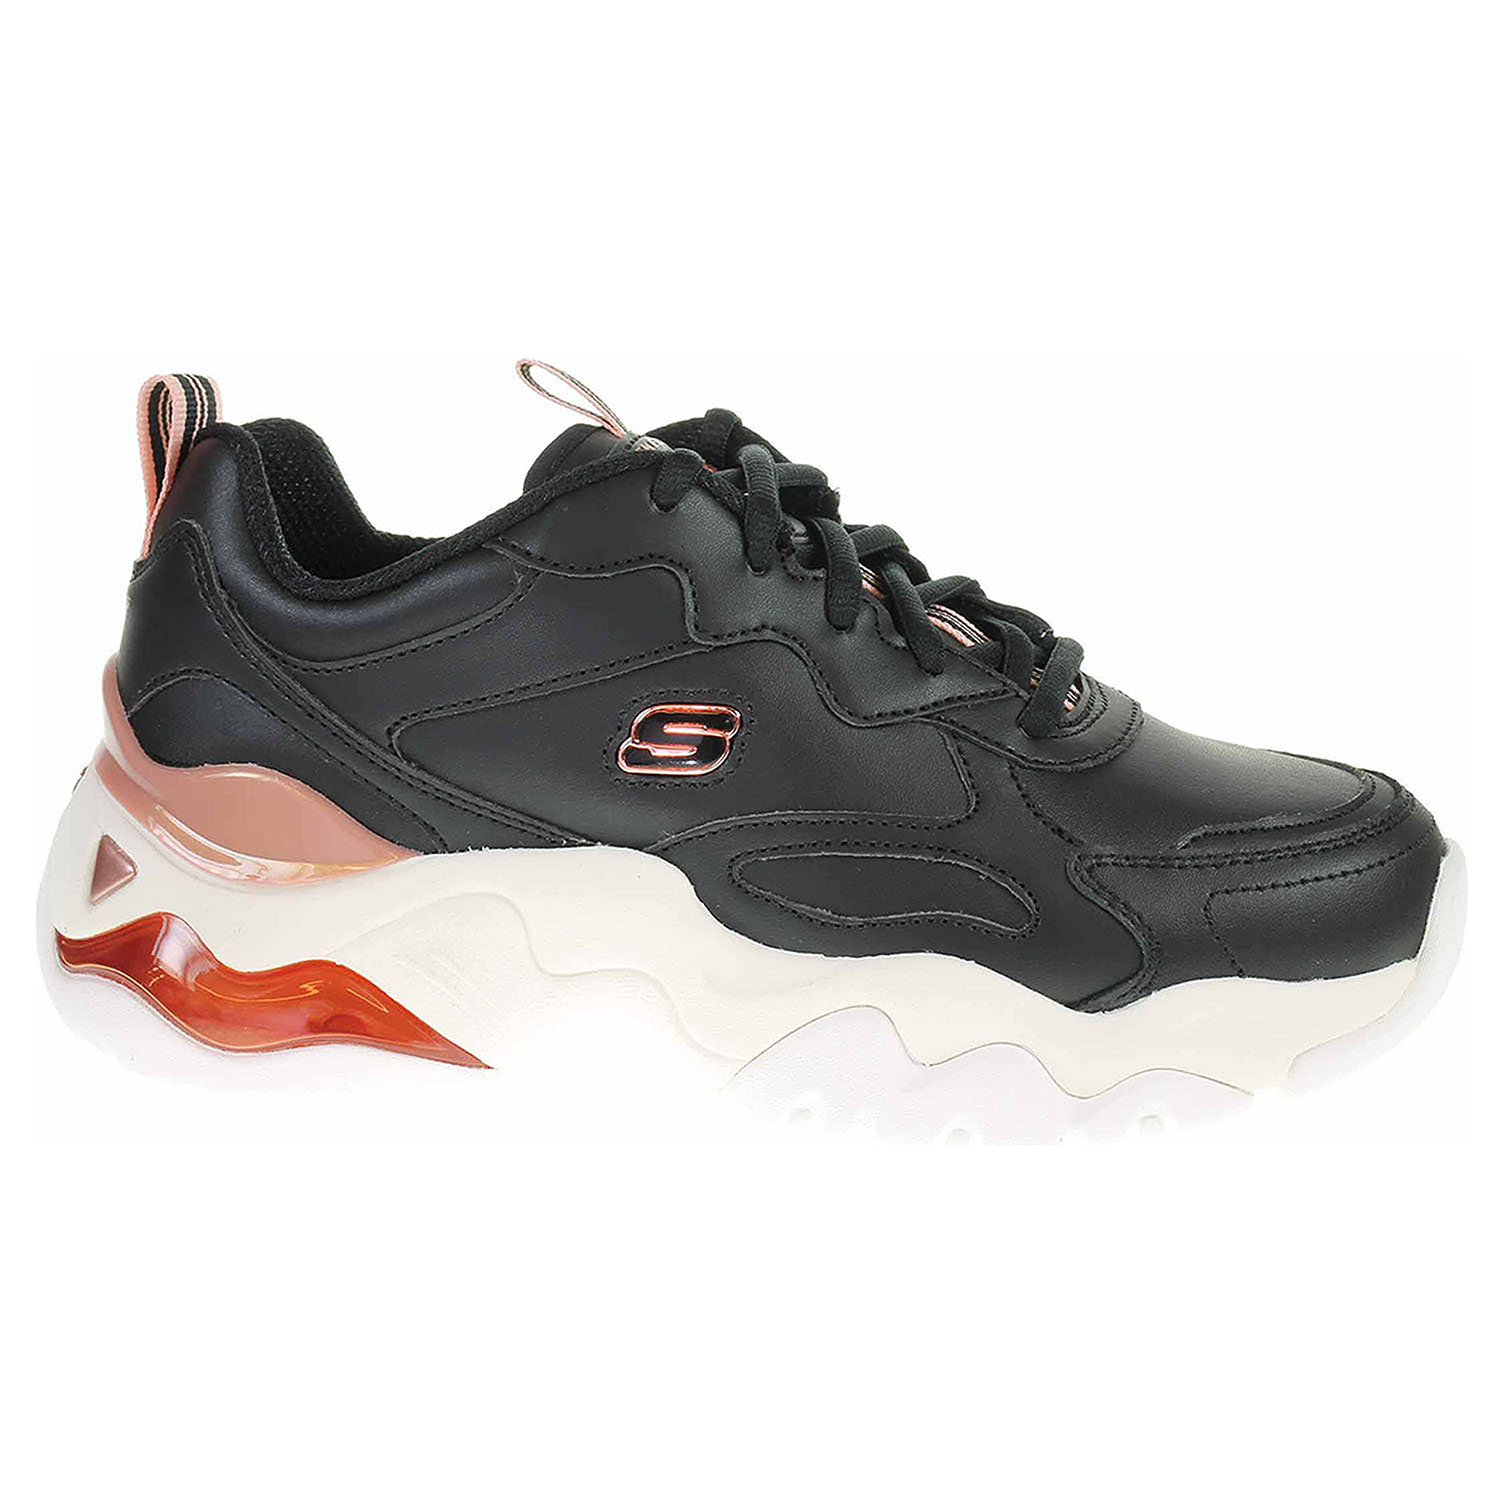 Skechers D´Lites 3.0 Air - Golden Rules black-rose gold 149088 BKRG 39